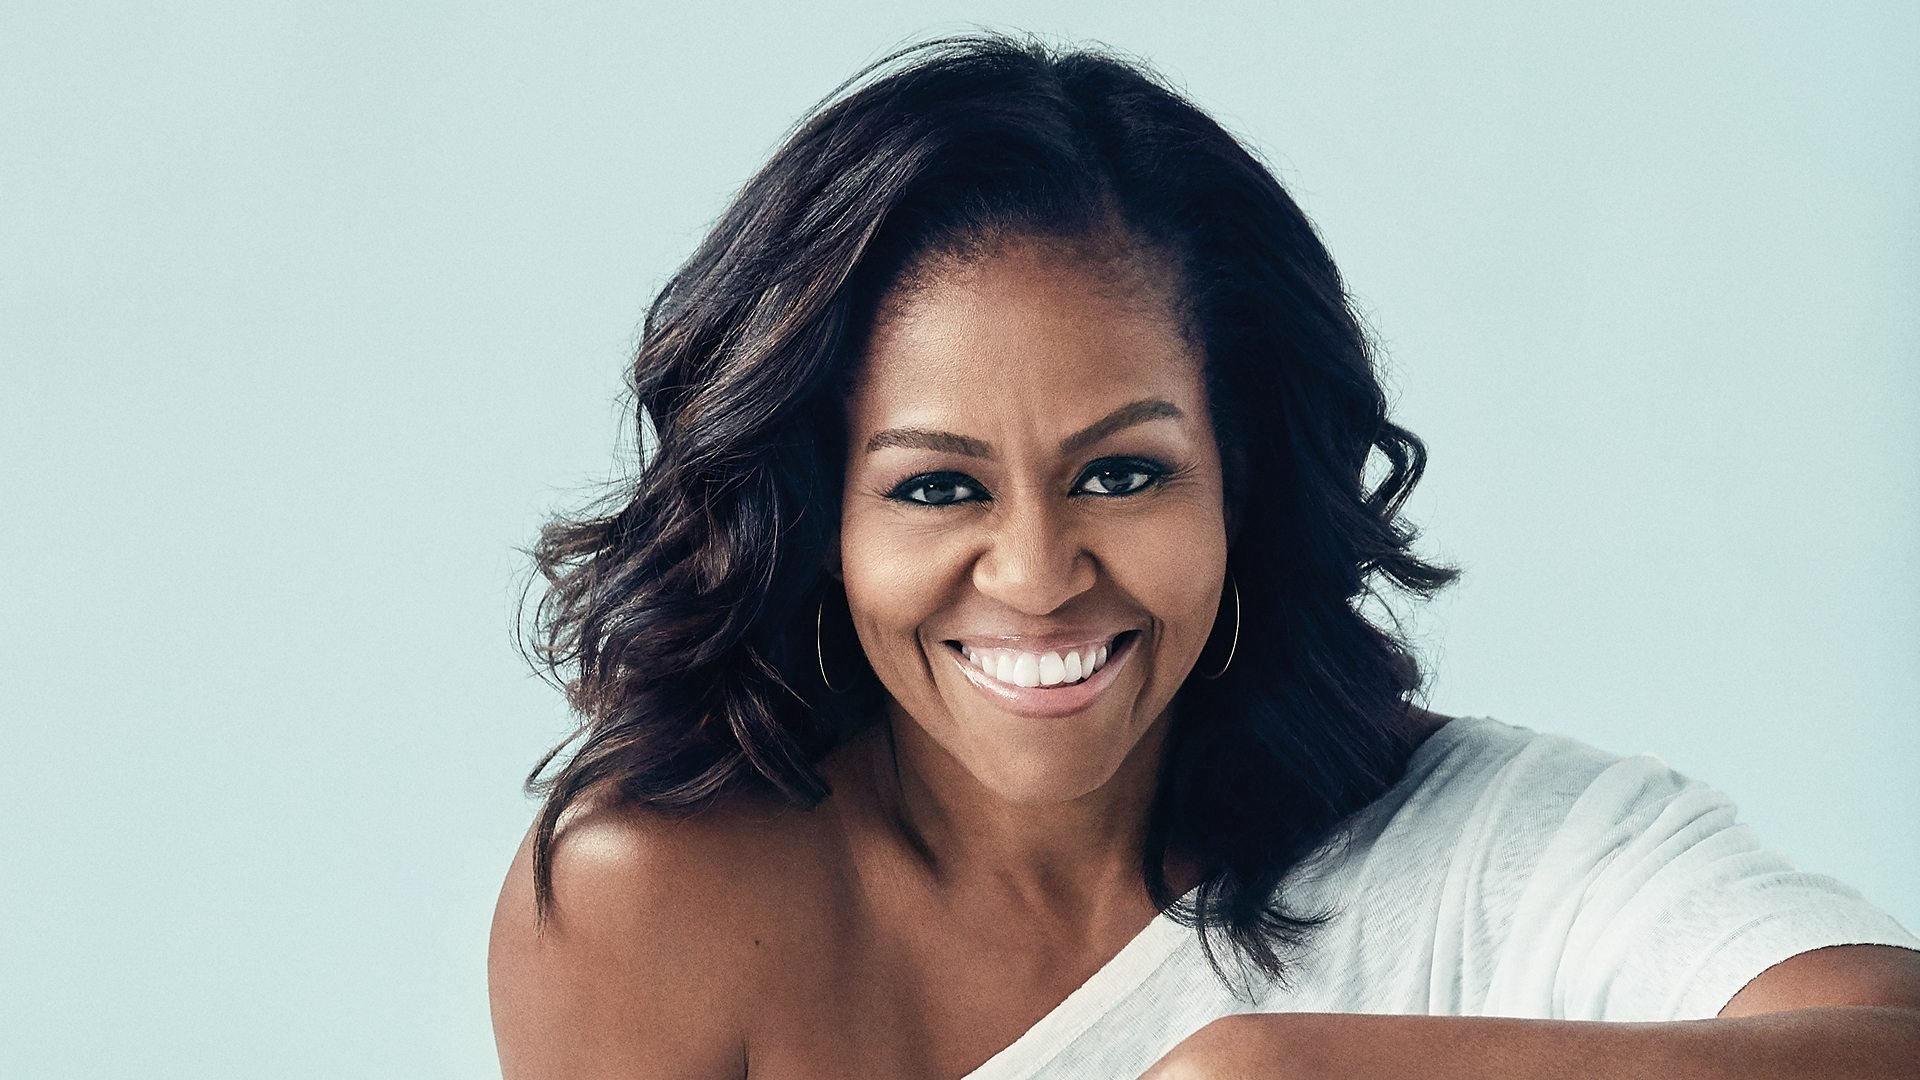 Michelle Obama's Fans Cry For Her Help After She Opens Up About Dealing With Depression